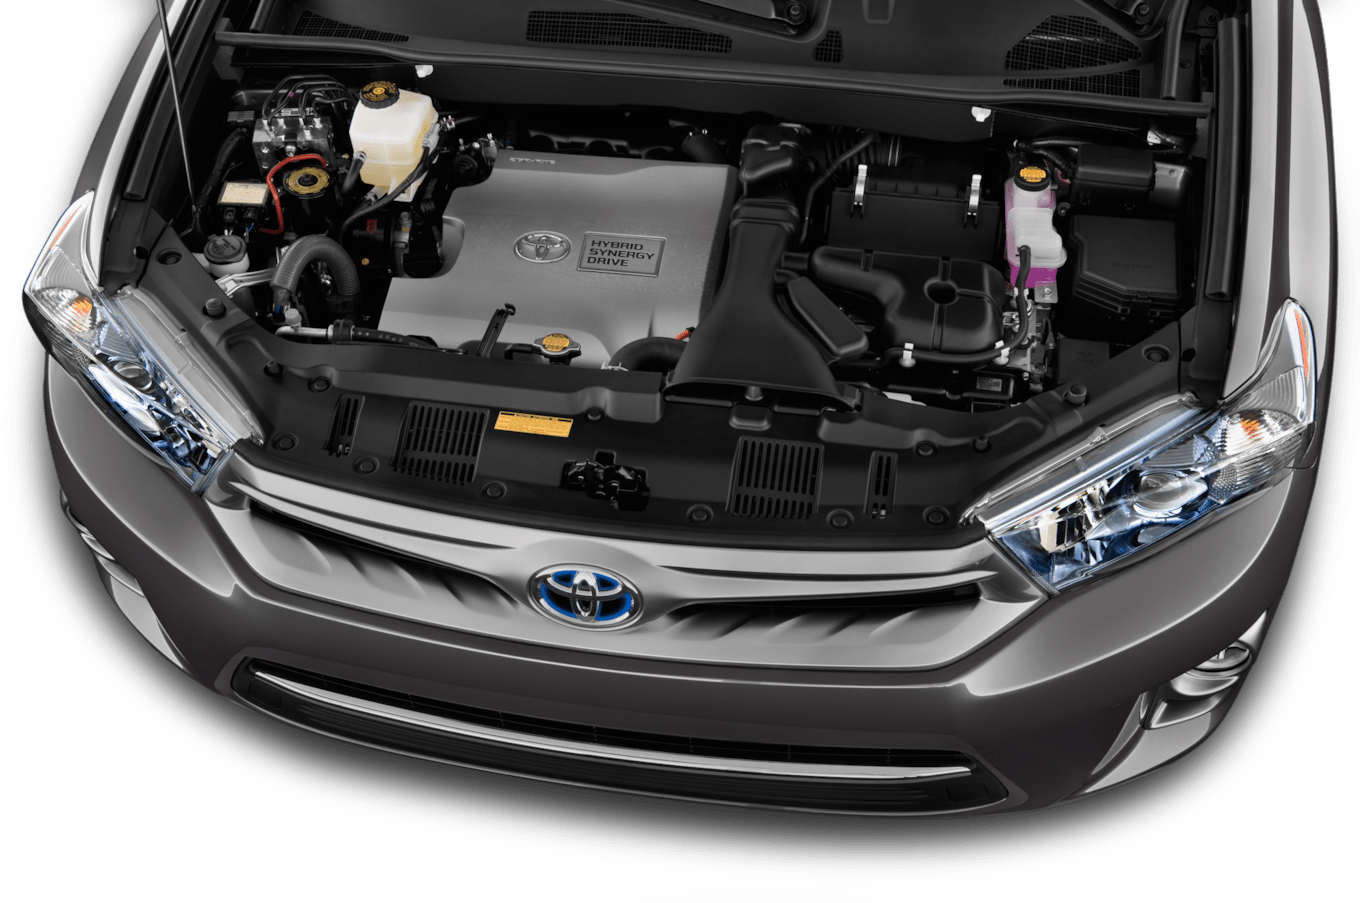 hight resolution of 2012 toyota highlander engine diagram most exciting wiring diagram 2012 toyota highlander engine diagram